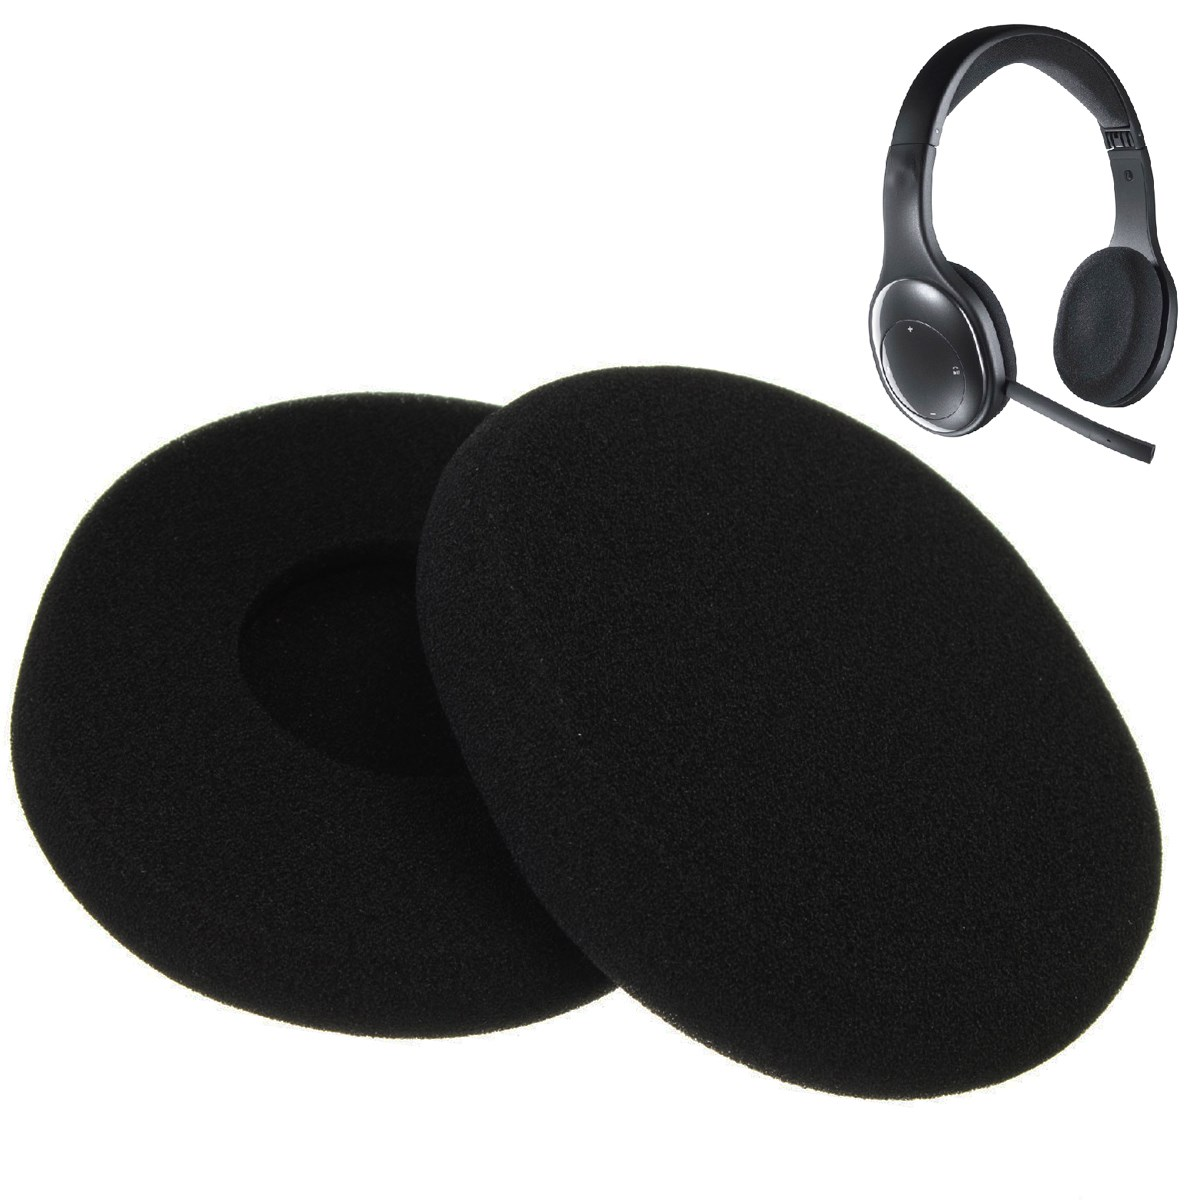 New Fashion Wholesale Headphone Replacement Sponge Soft Foam Ear Pads Earpad Cushion For Logitech H800 Headphones Best Price<br><br>Aliexpress